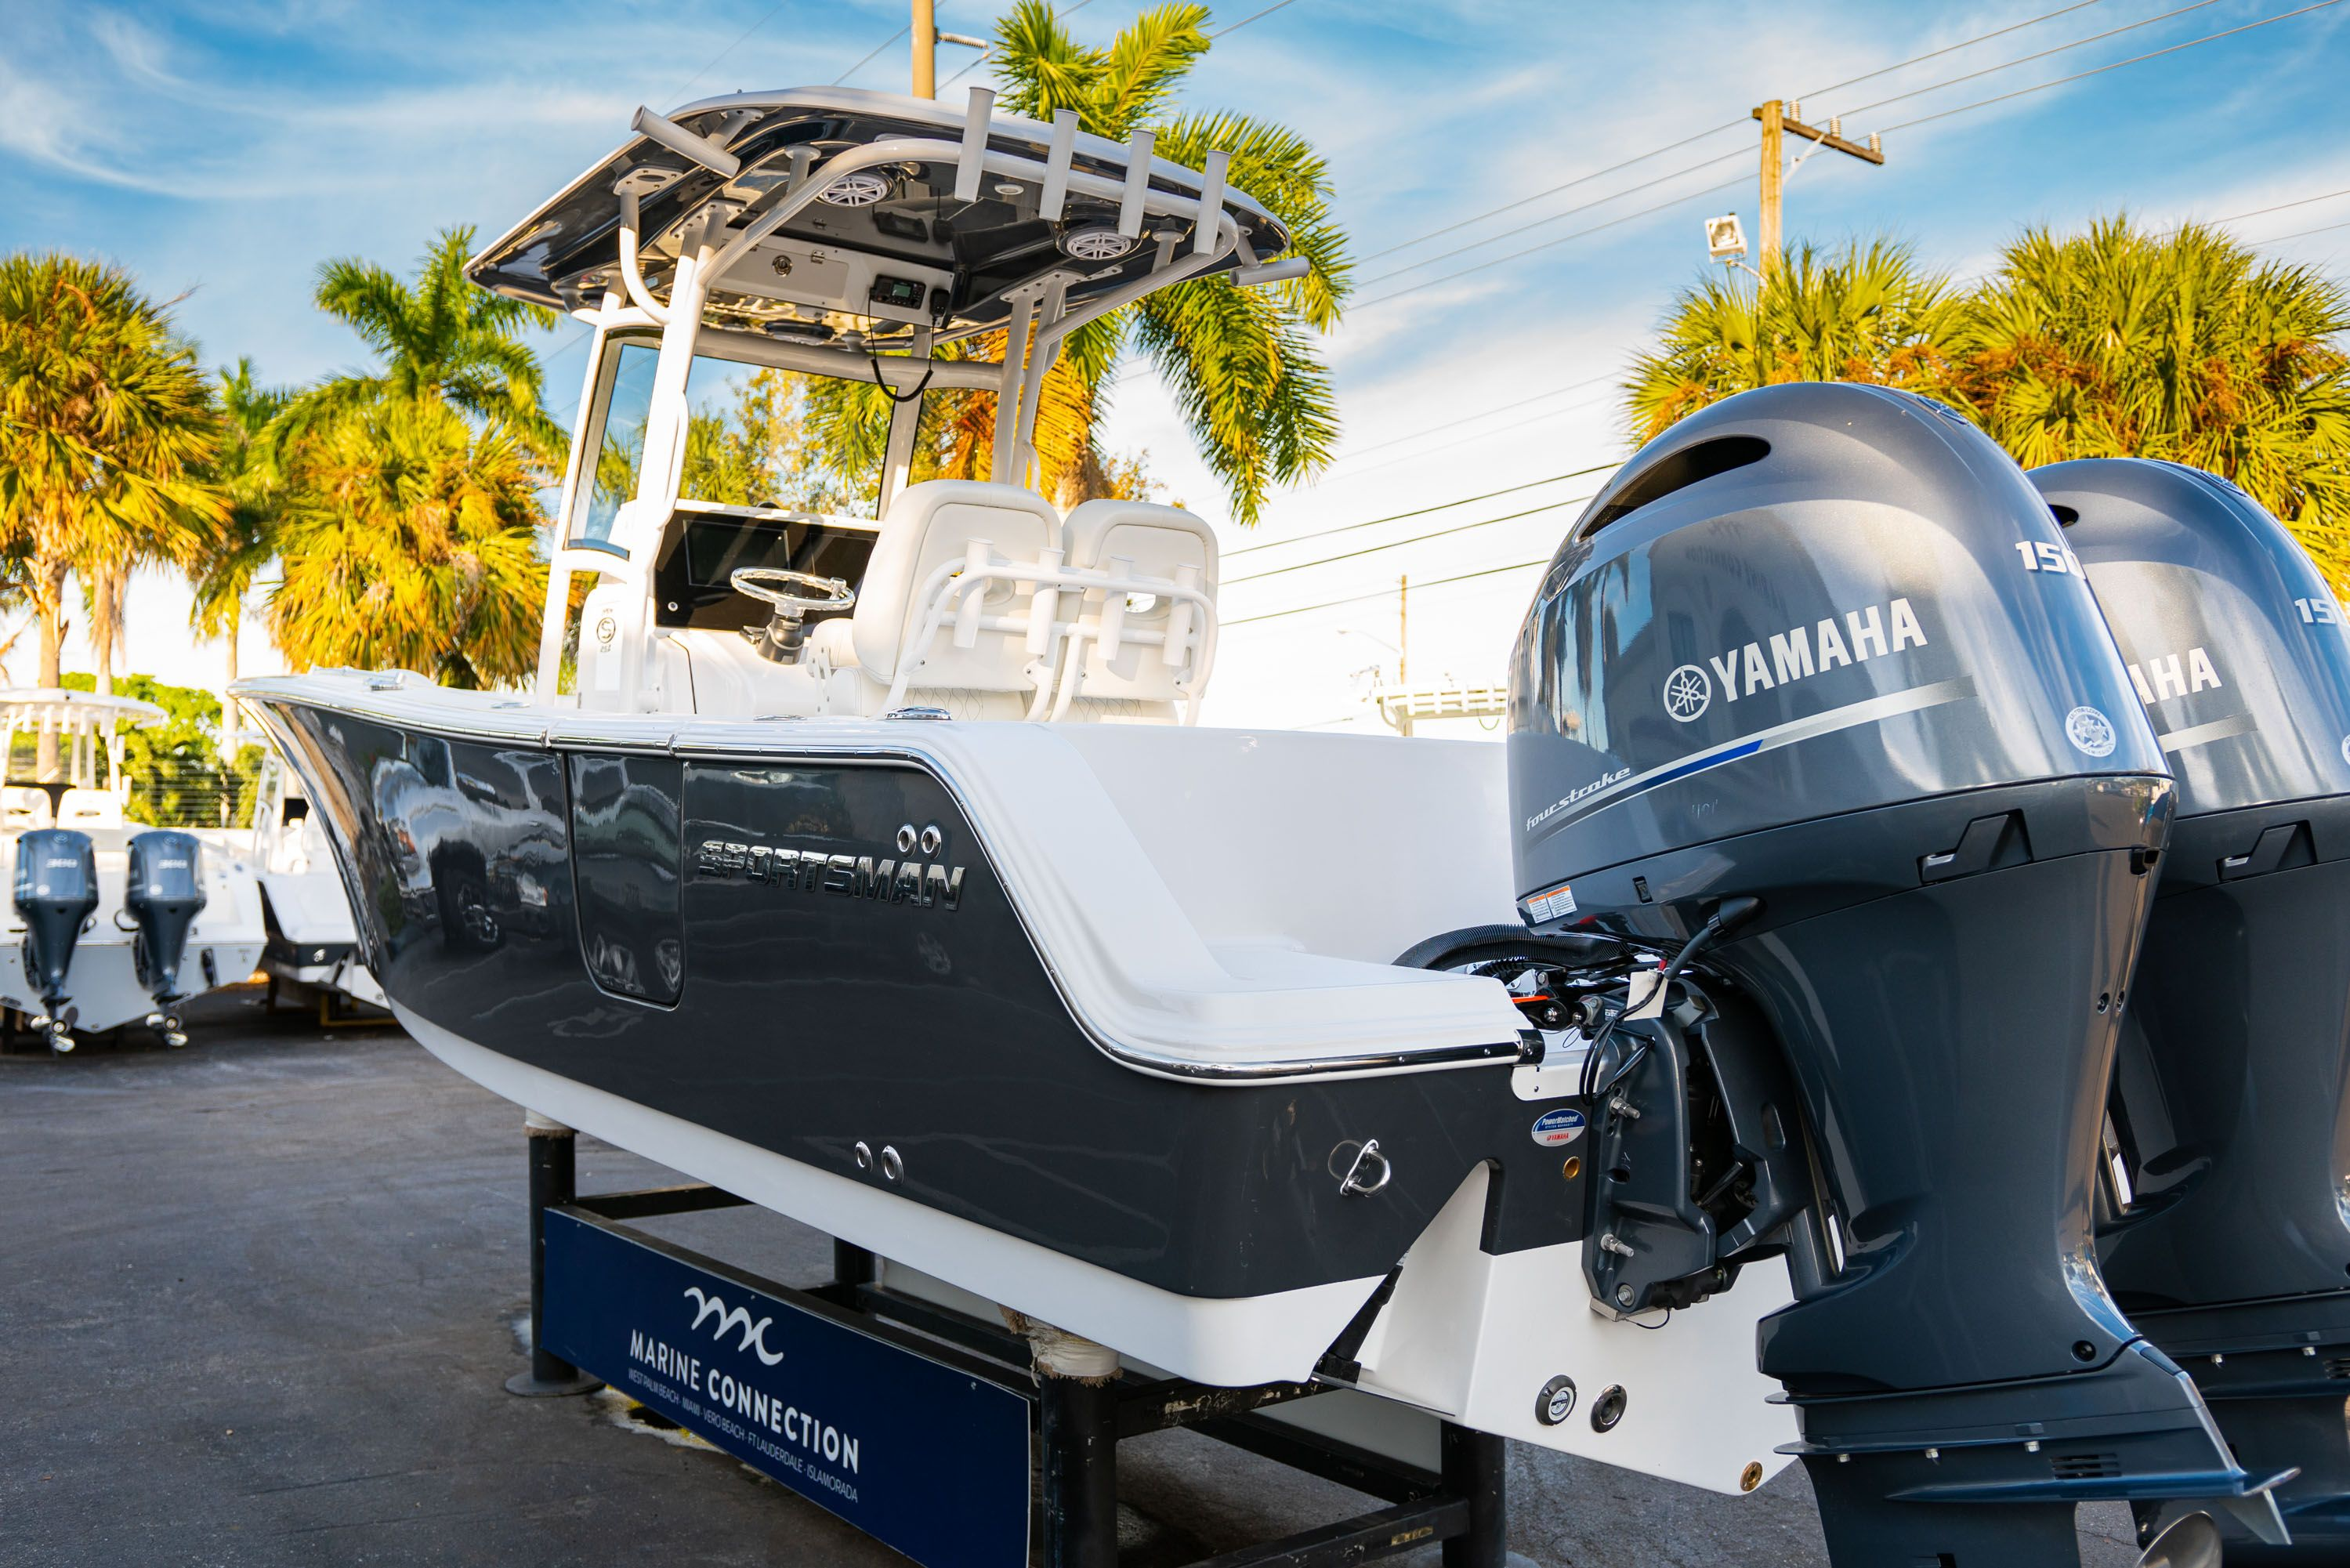 Thumbnail 5 for New 2020 Sportsman Open 252 Center Console boat for sale in West Palm Beach, FL